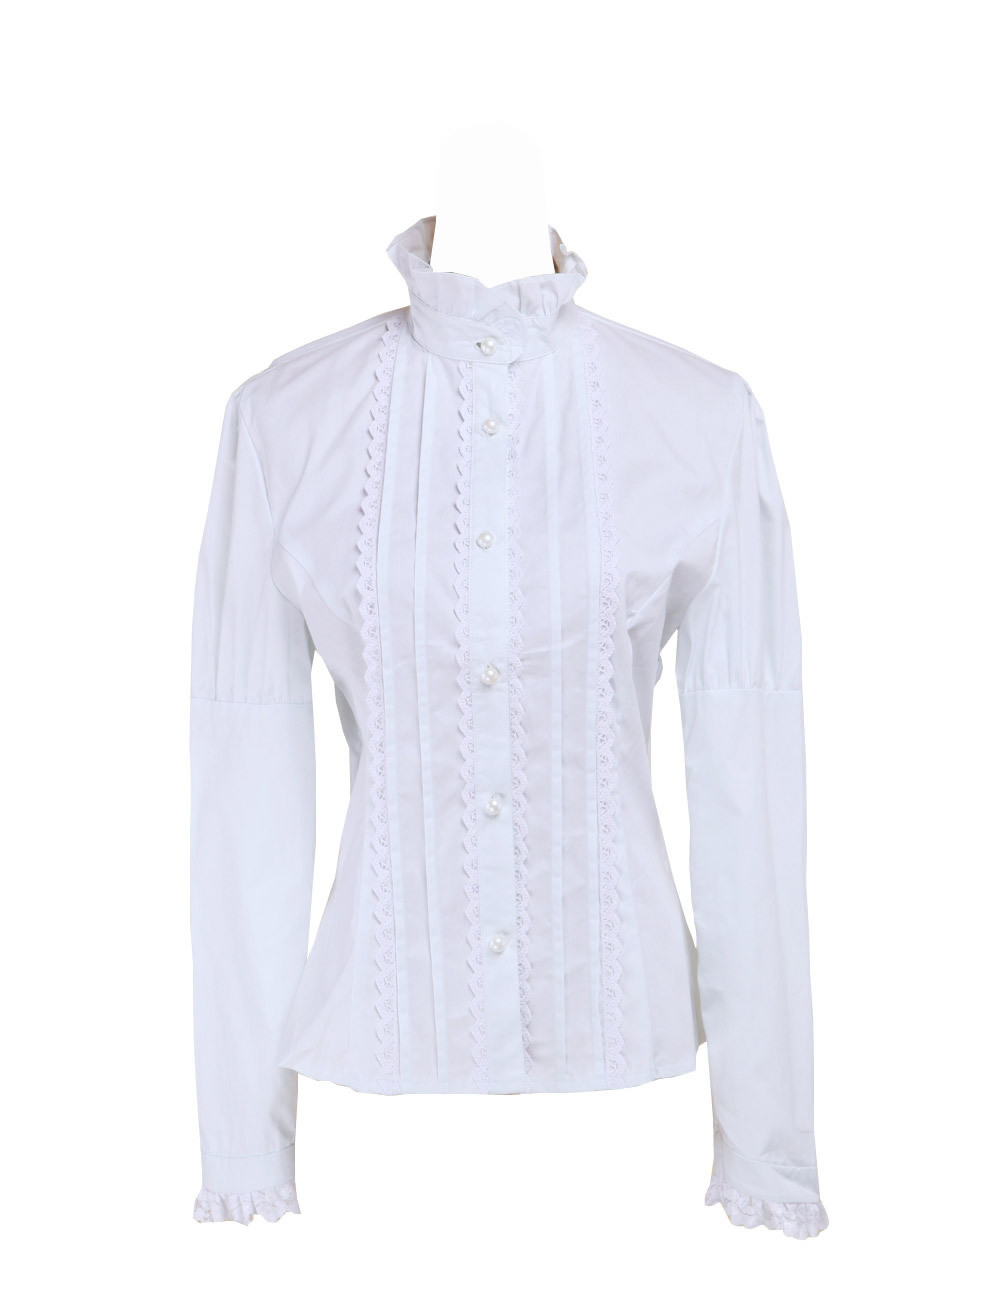 Primary image for White Cotton Stand-up Collar Lace Pintucks Victorian Lolita Shirt Blouse